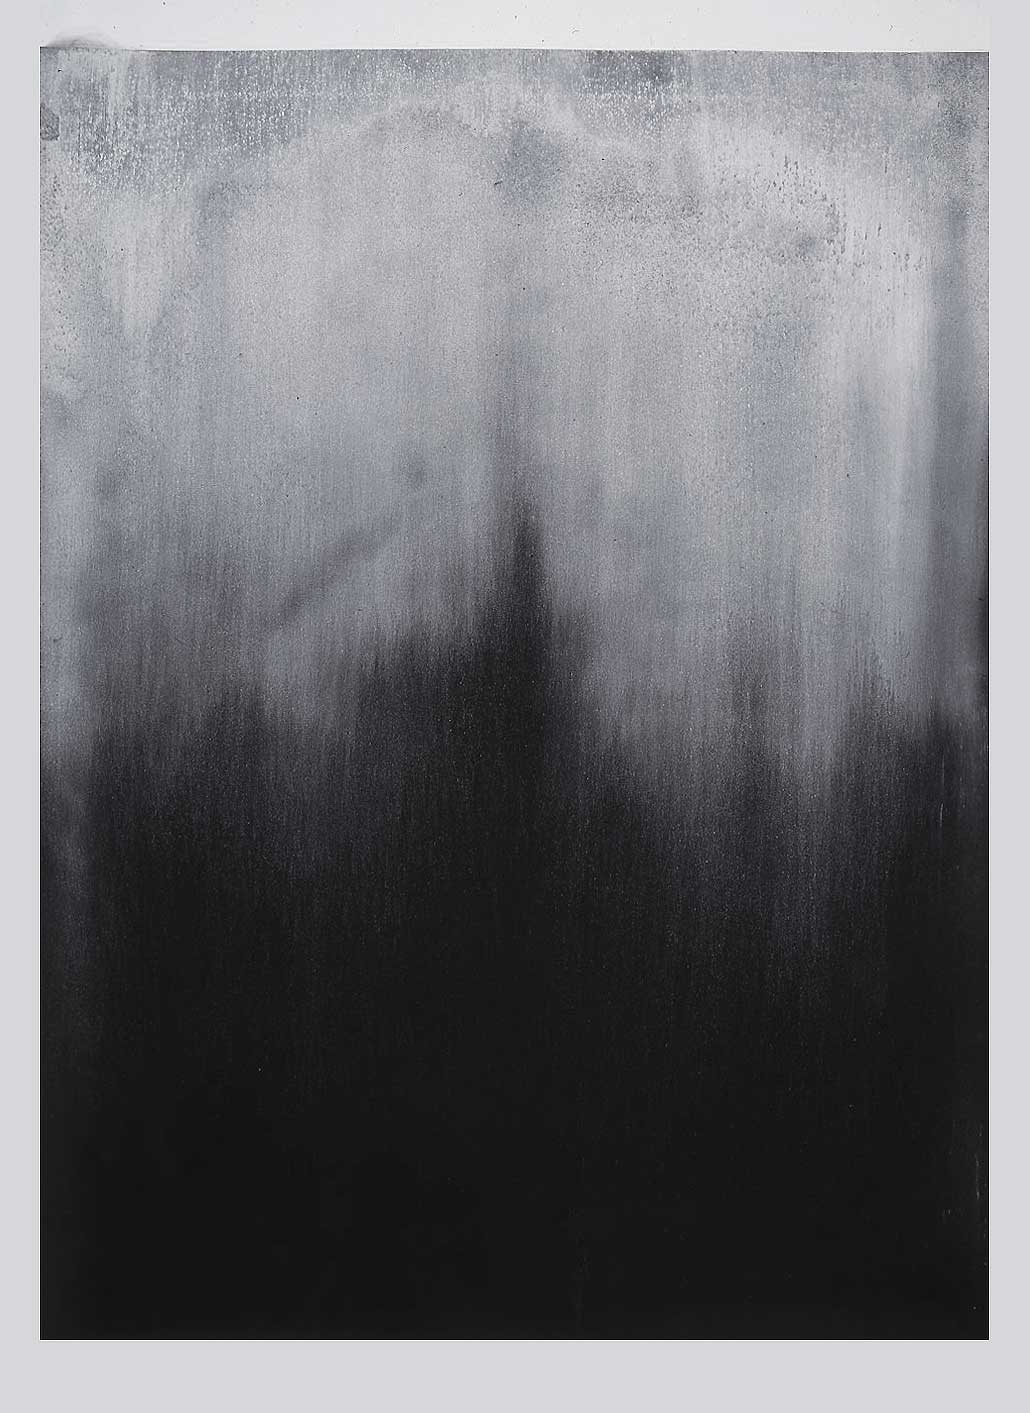 BEYOND THE REVEALING DARKNESS  1997  limestone powder on carbon deposit  165.0 x 113.0 cm